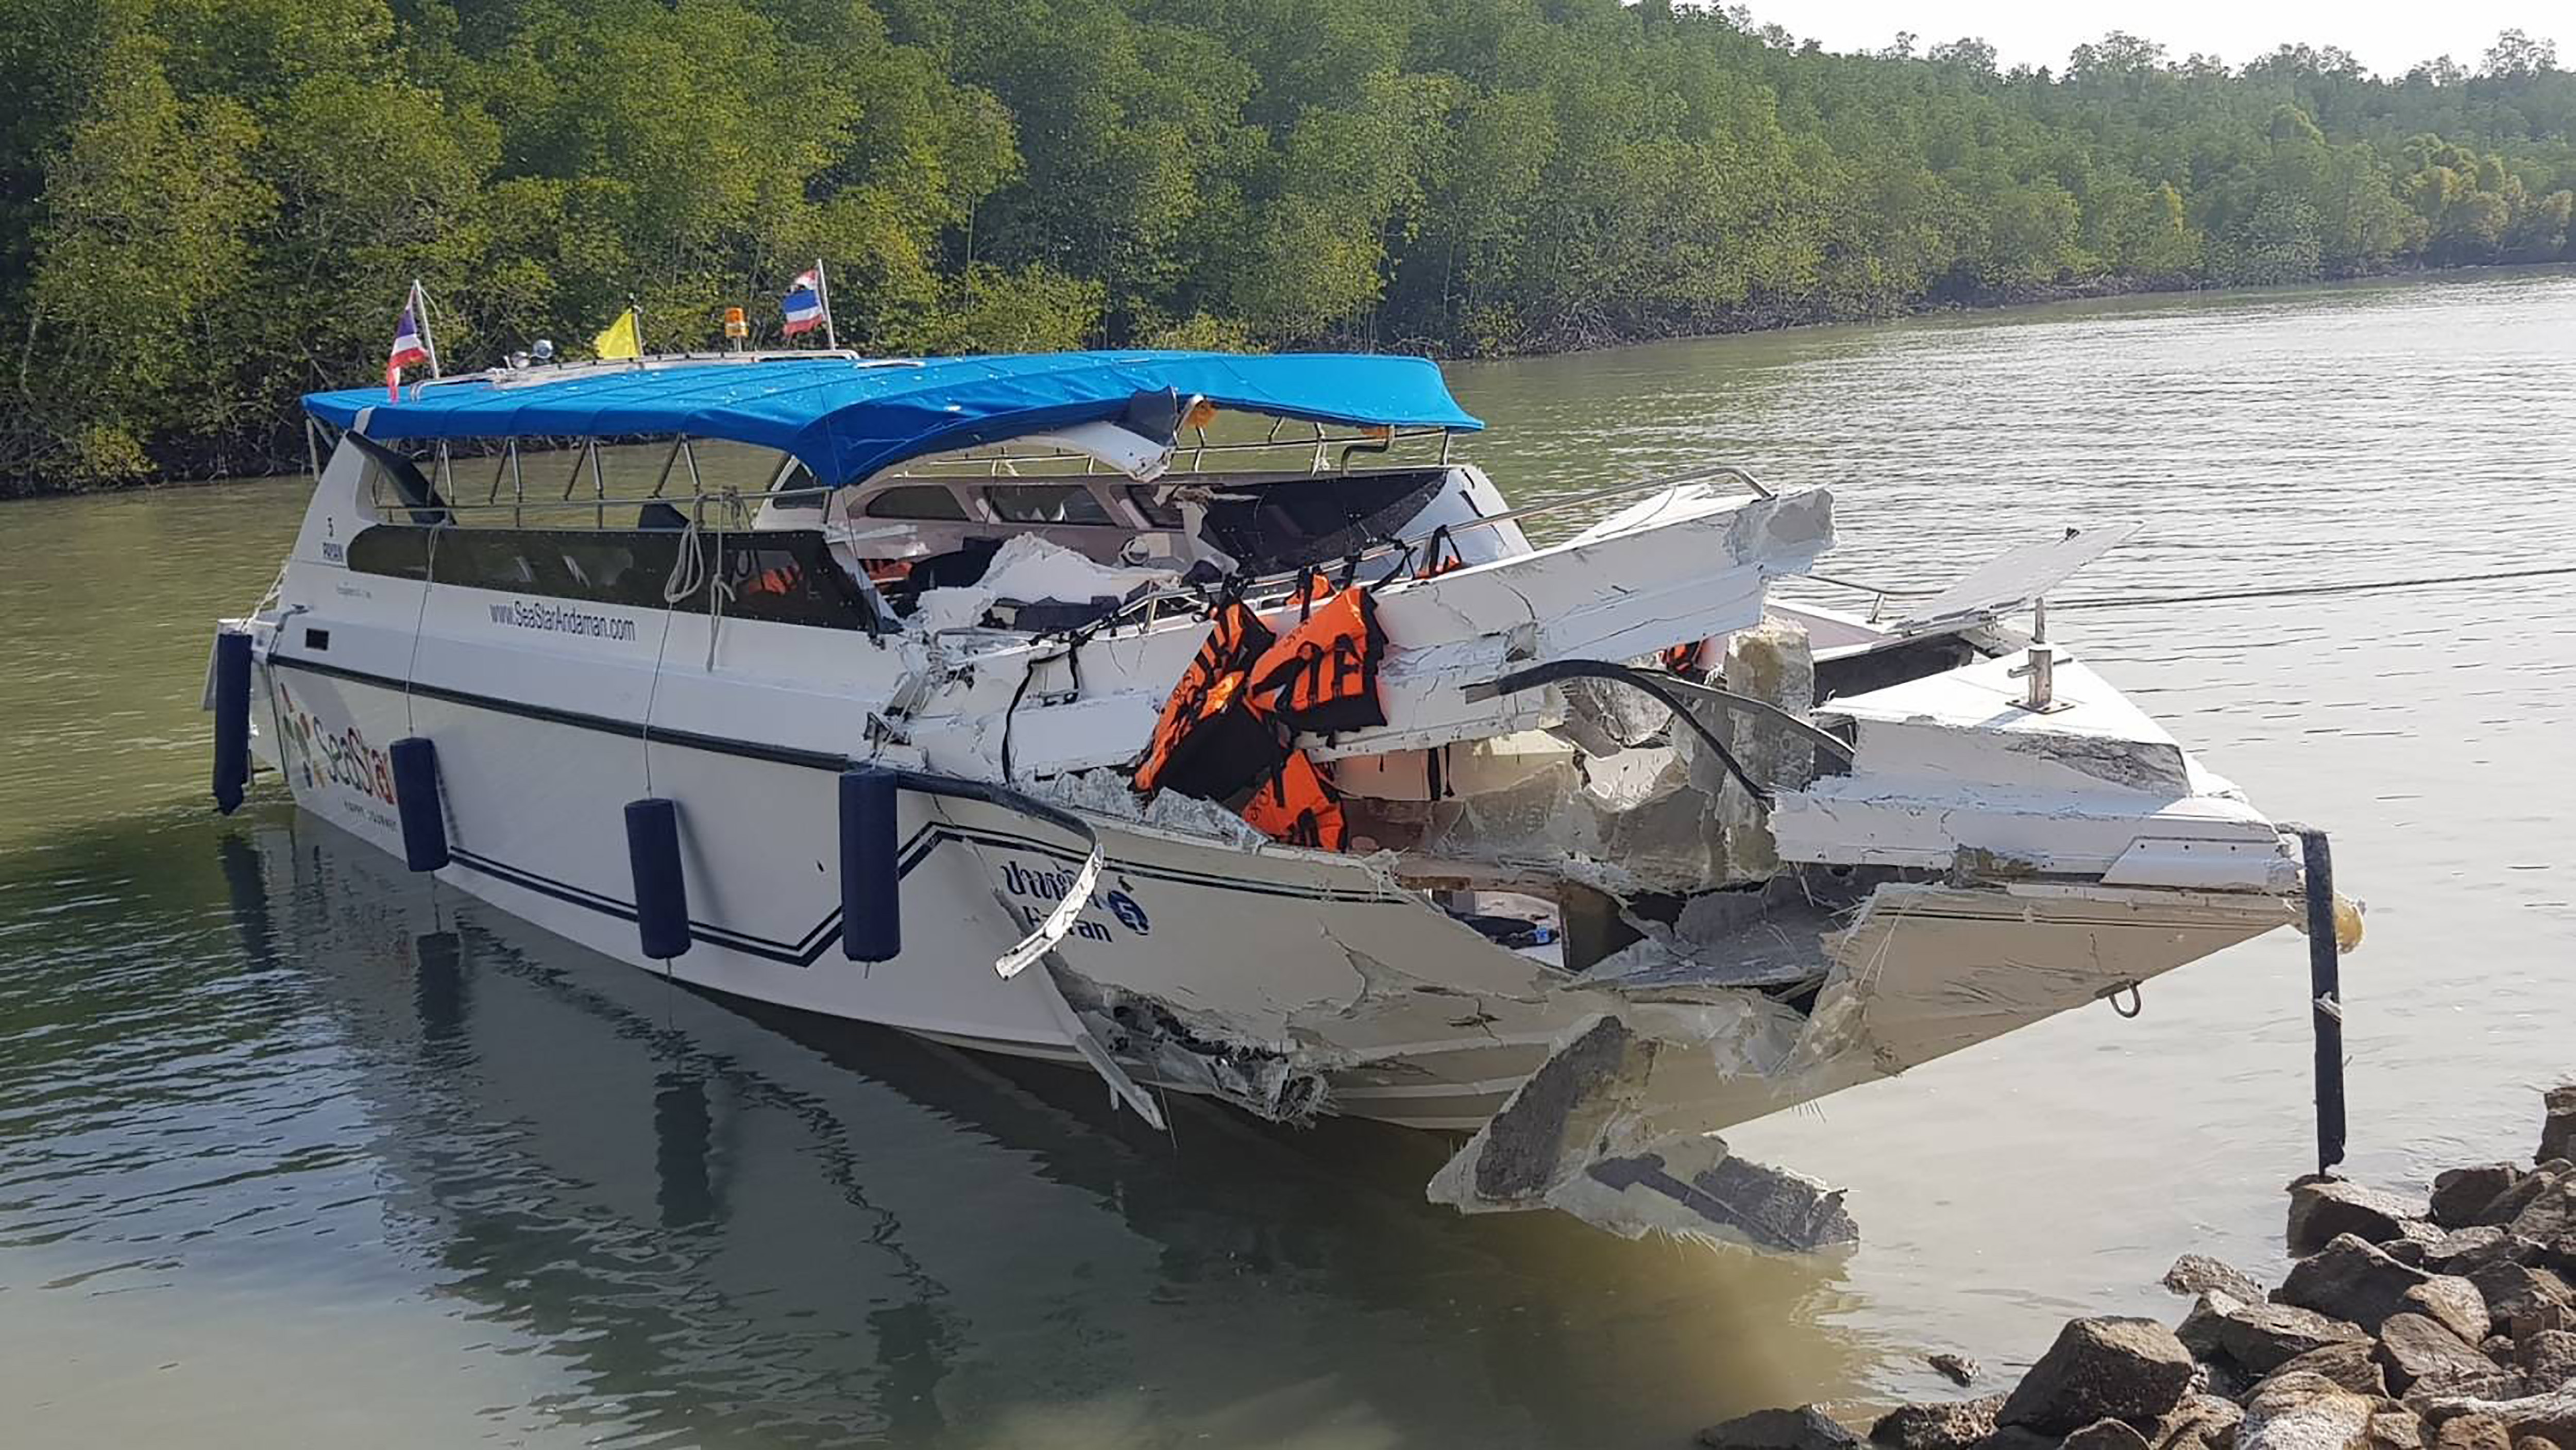 A speedboat used for tourists is heavily damaged after it collided with another speedboat off the Thai resort island of Phuket